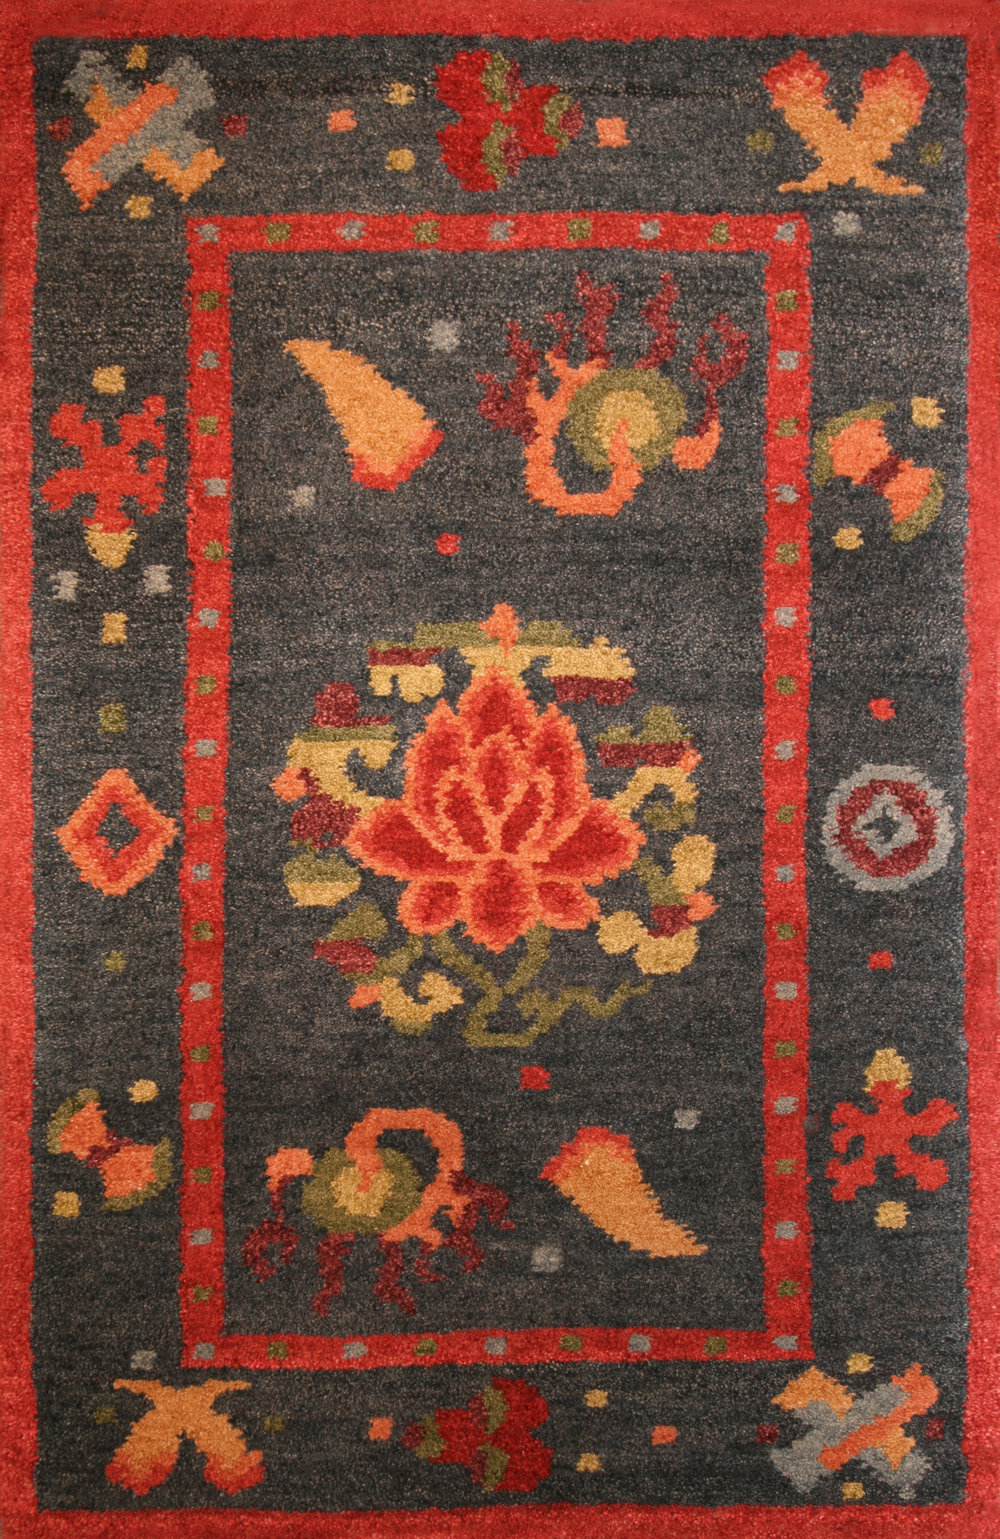 Lotus and Amulet, Tibet, 2'x3'